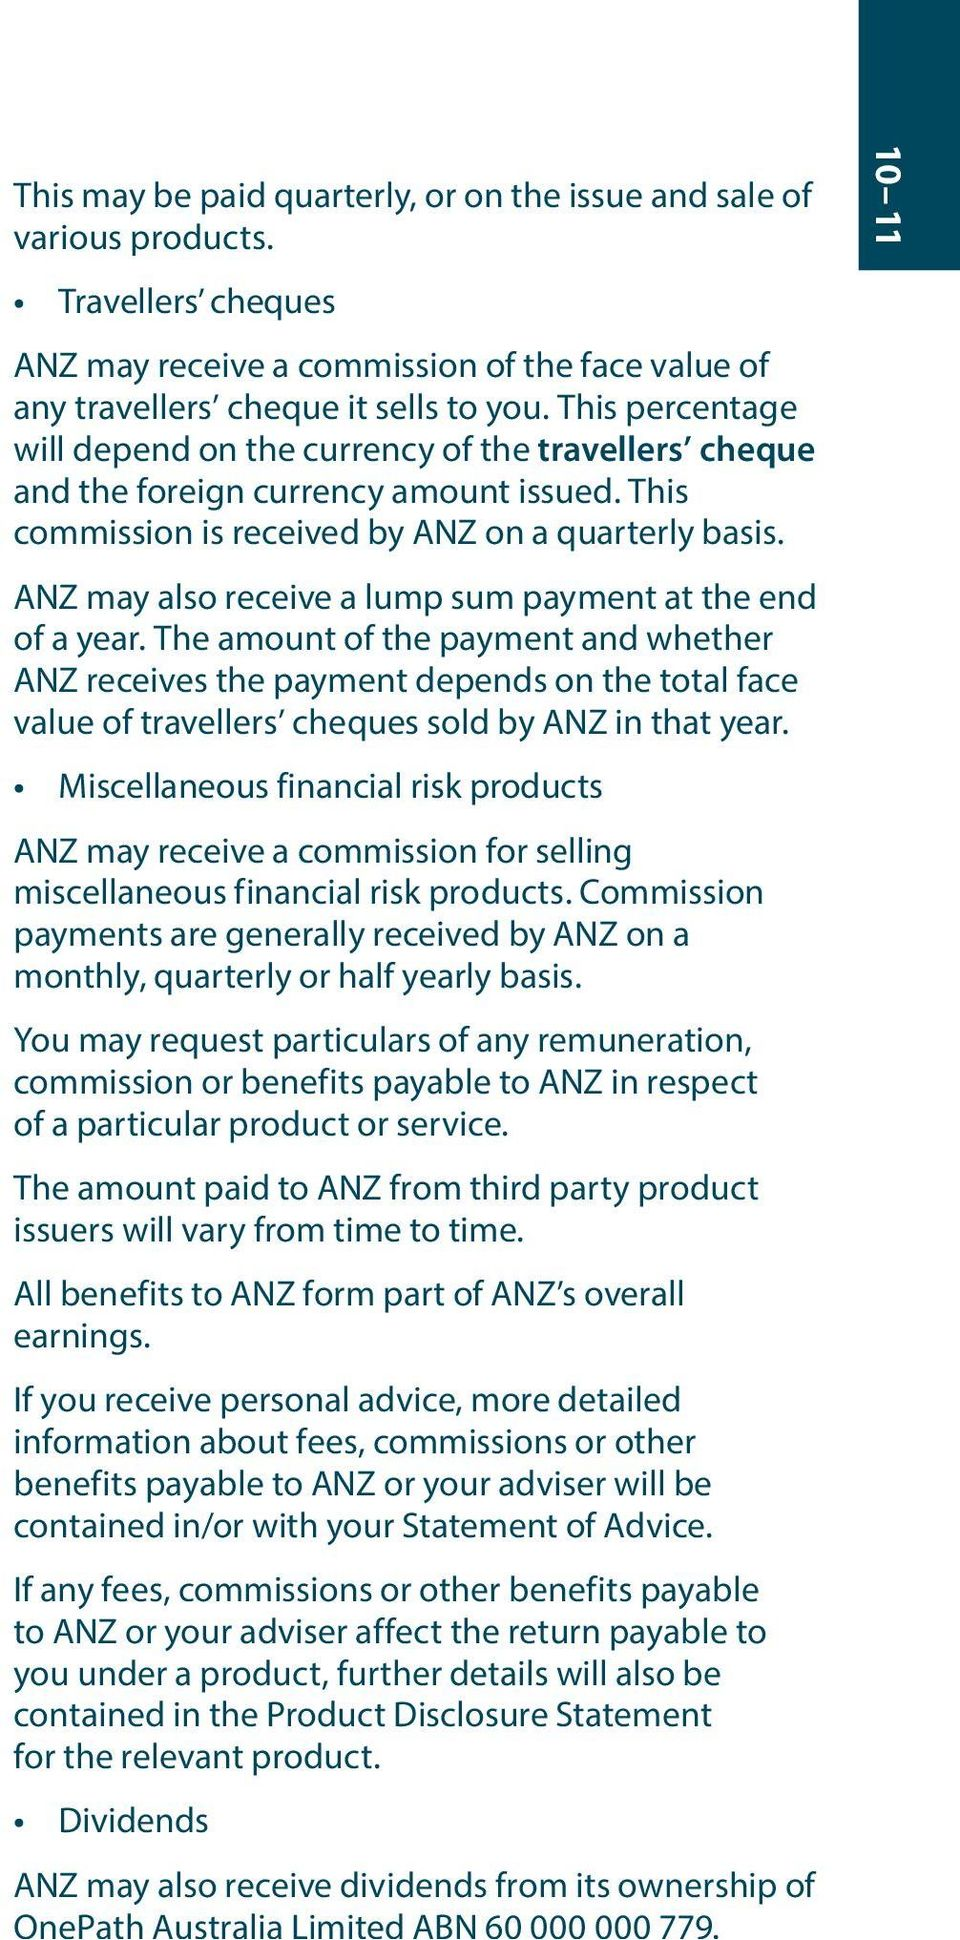 ANZ may also receive a lump sum payment at the end of a year.